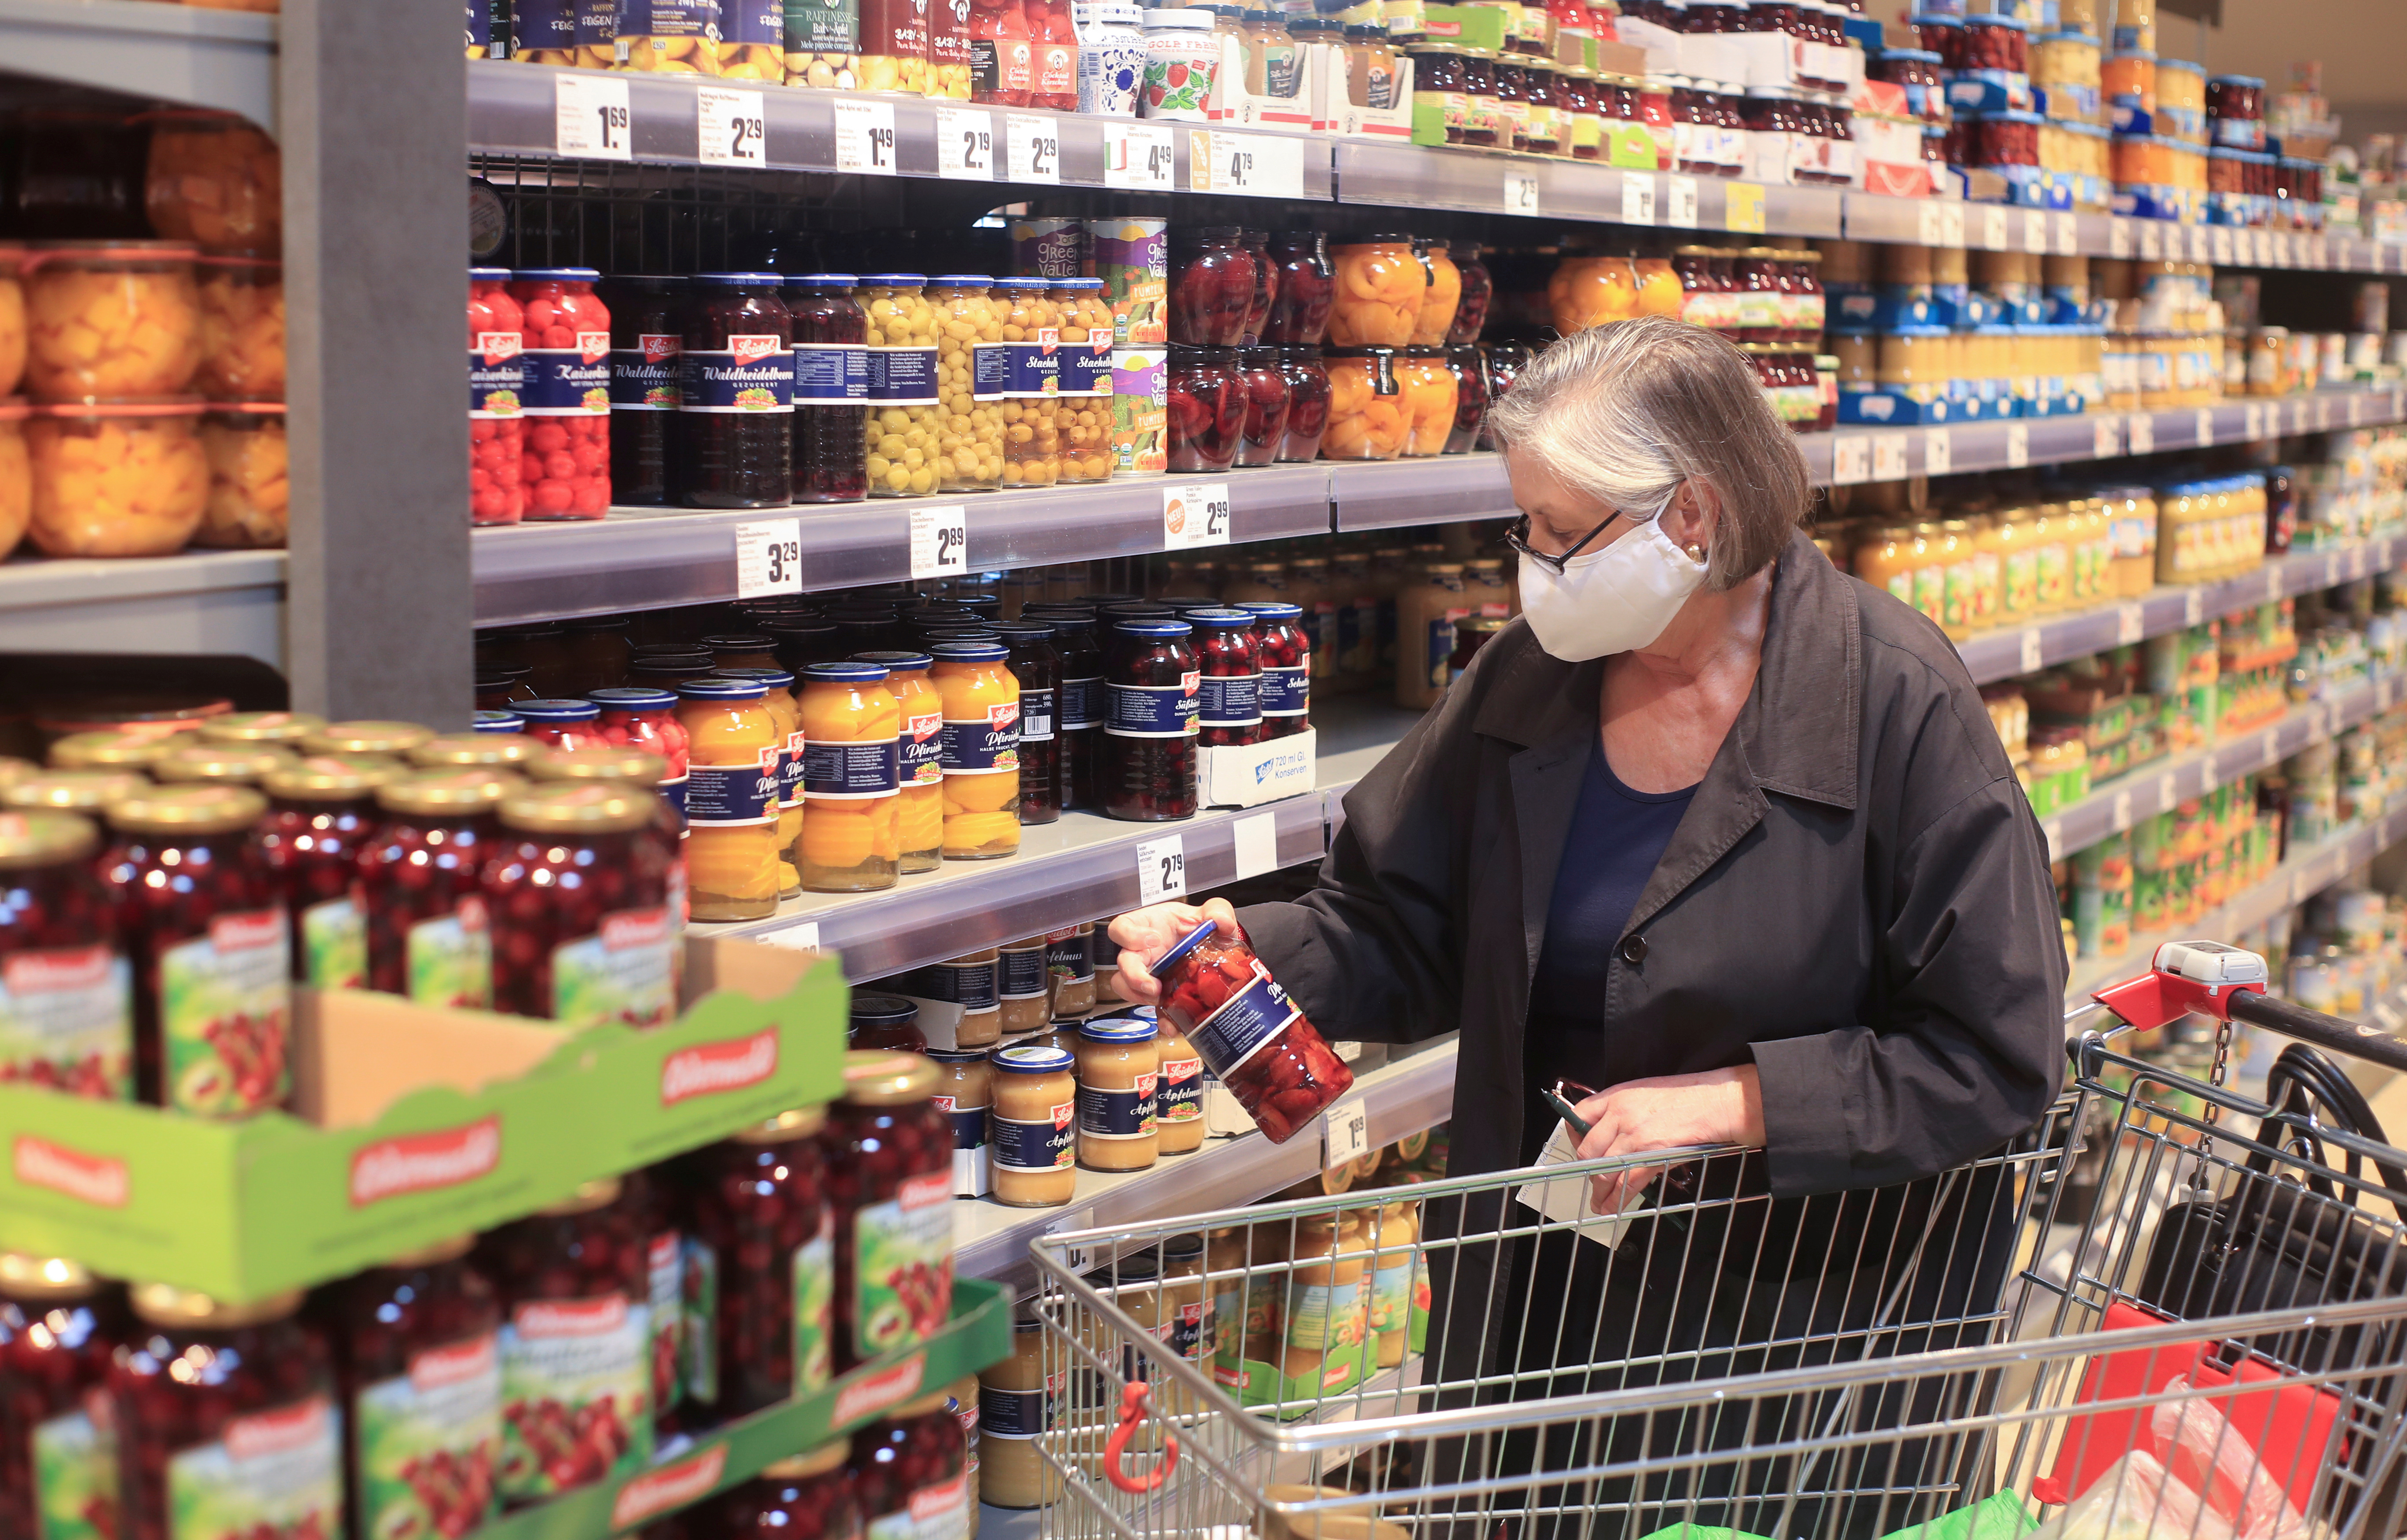 An elderly woman wearing a face mask shops in a supermarket, after the federal state of North Rhine-Westphalia decided to make wearing protective masks obligatory in shops and public transportation to fight the spread of the coronavirus disease (COVID-19), in Bad Honnef near Bonn,  Germany, April 27, 2020. REUTERS/Wolfgang Rattay/File Photo